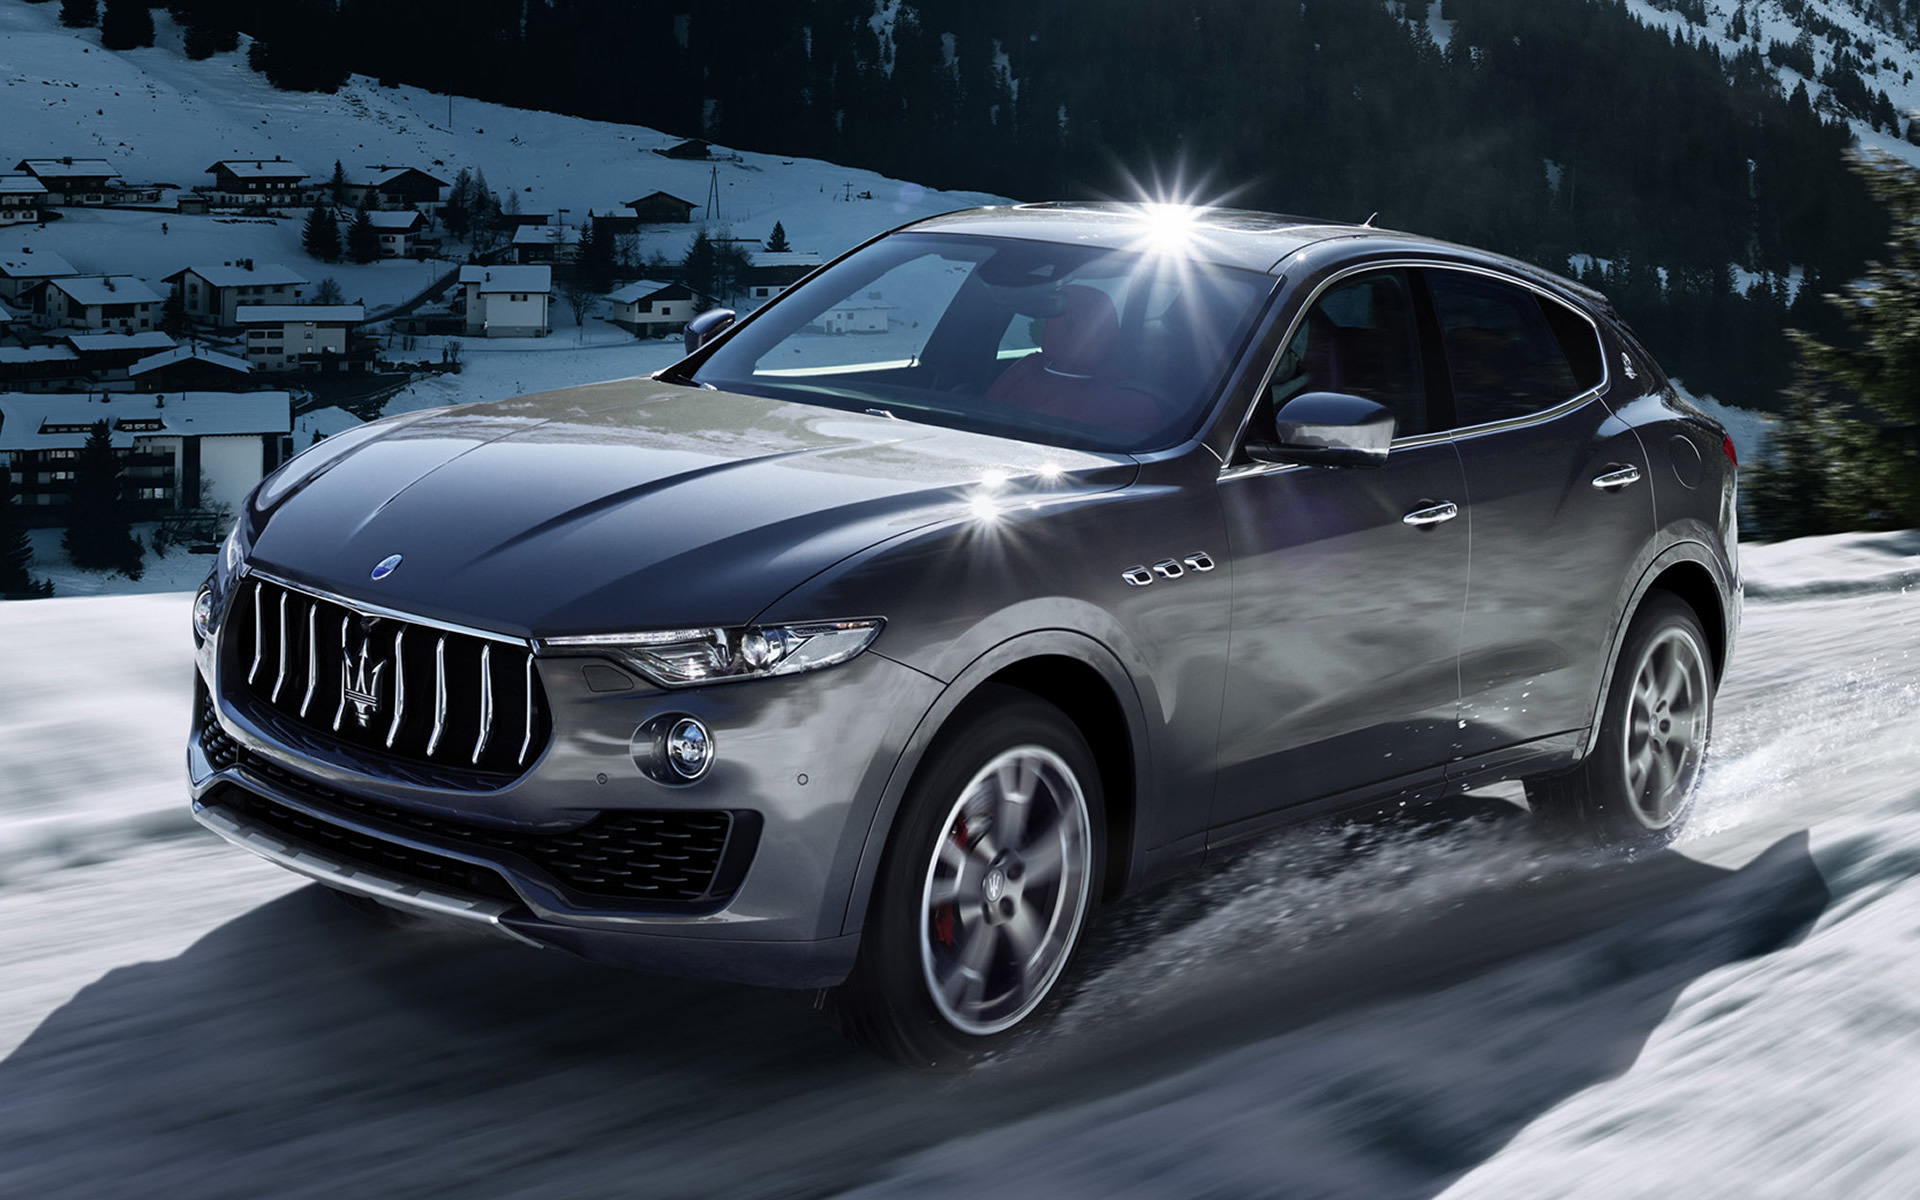 2016 Dodge Ram >> 2016 Maserati Levante - Wallpapers and HD Images | Car Pixel